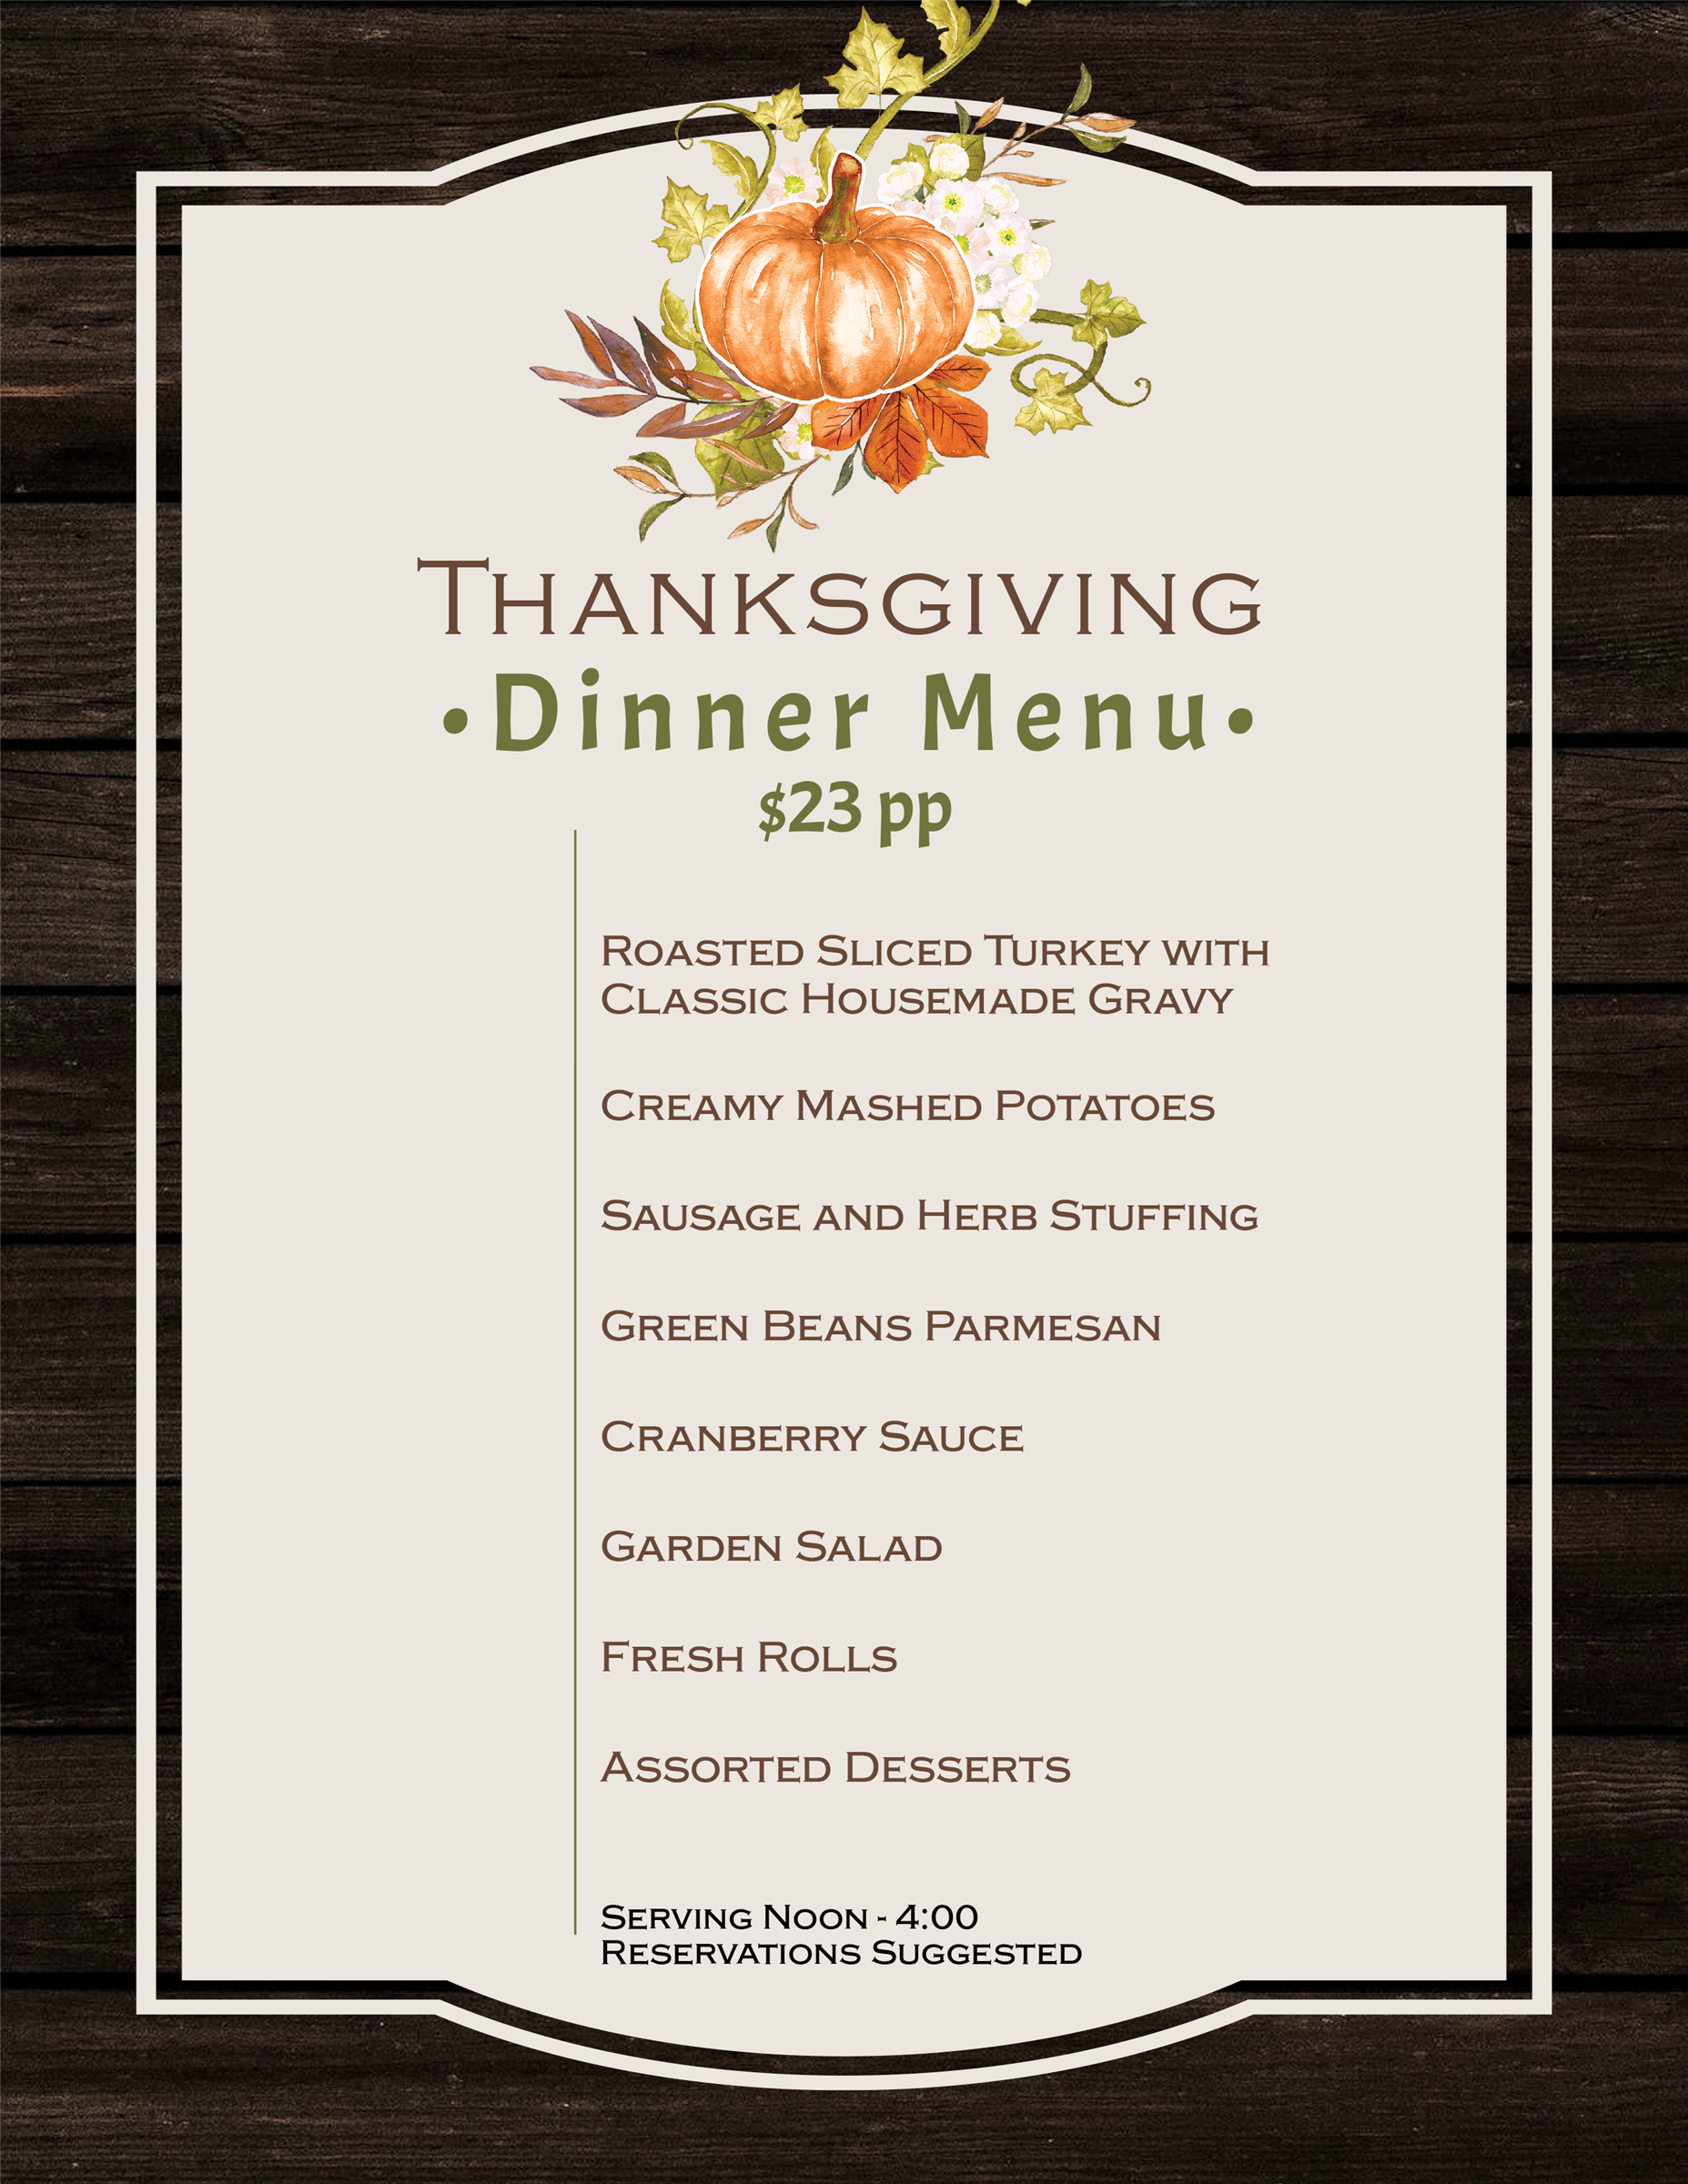 Thanksgiving Menu - View PDF for Readable Version.